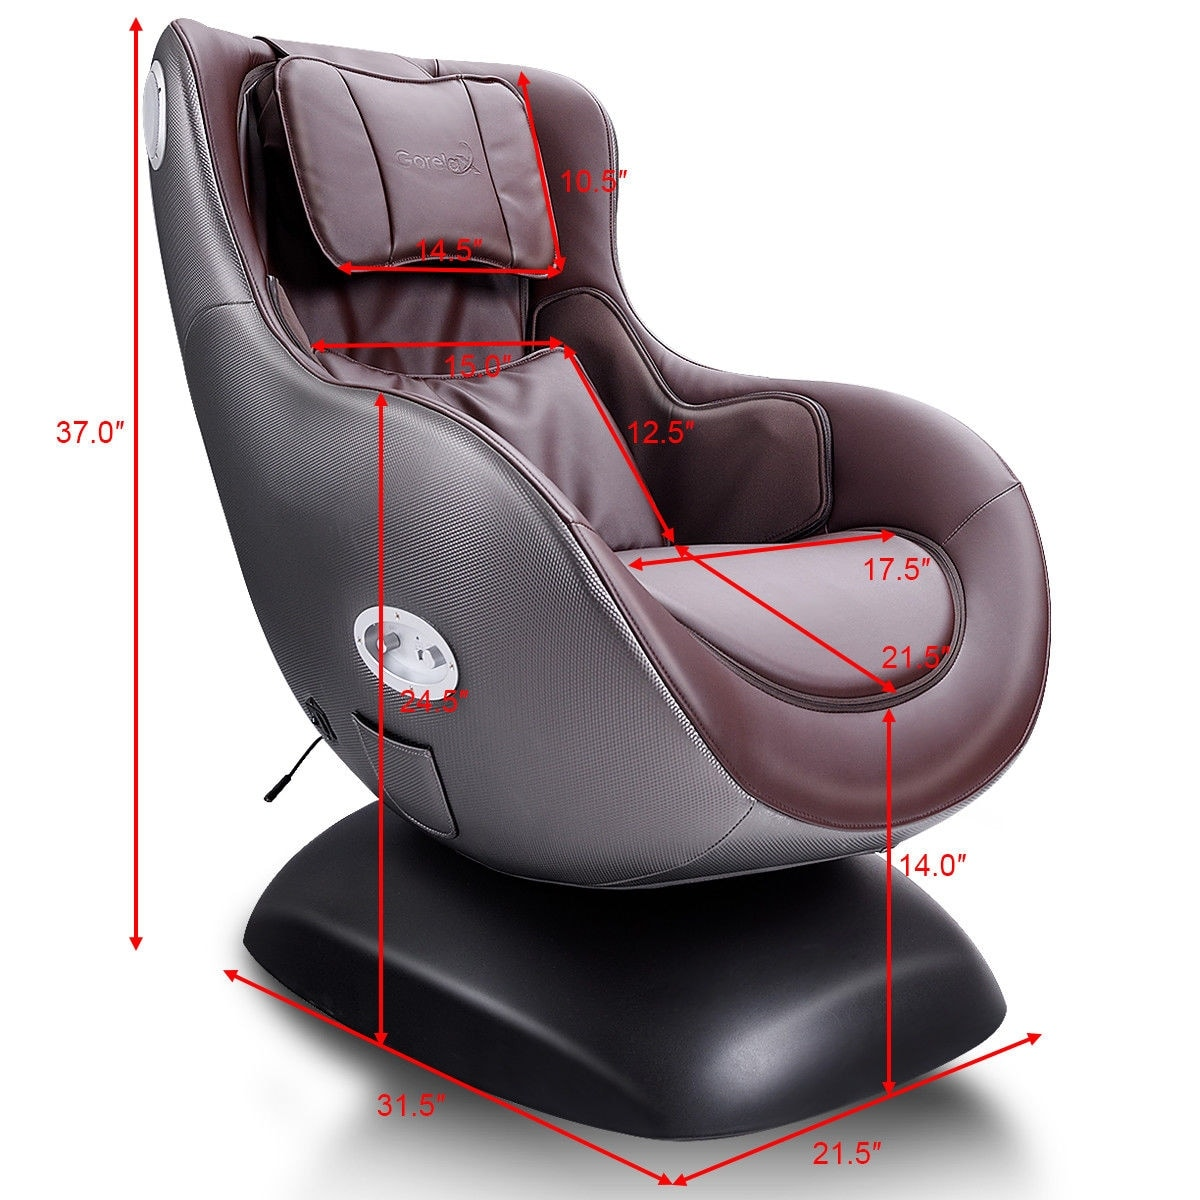 Massage Chair Cover Costway Brown Leisure Curve Heated Massage Chair Wireless Bluetooth Speaker Usb Charger